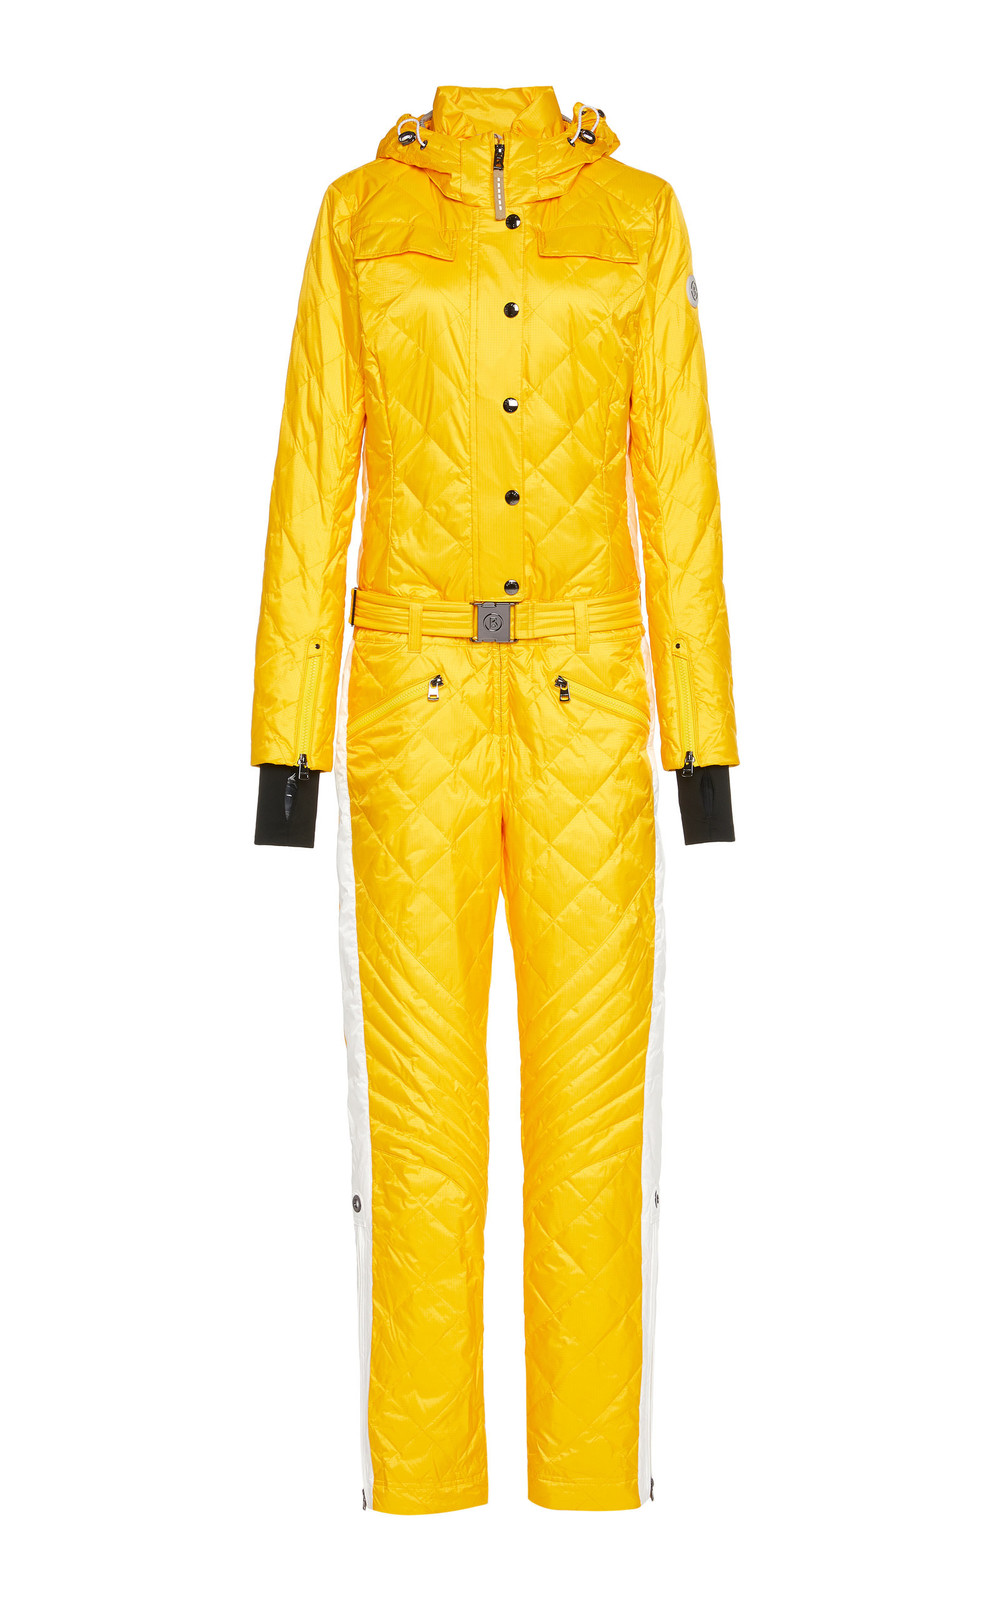 Bogner Greta Hooded Quilted Ripstop Jumpsuit Size: 4 in yellow